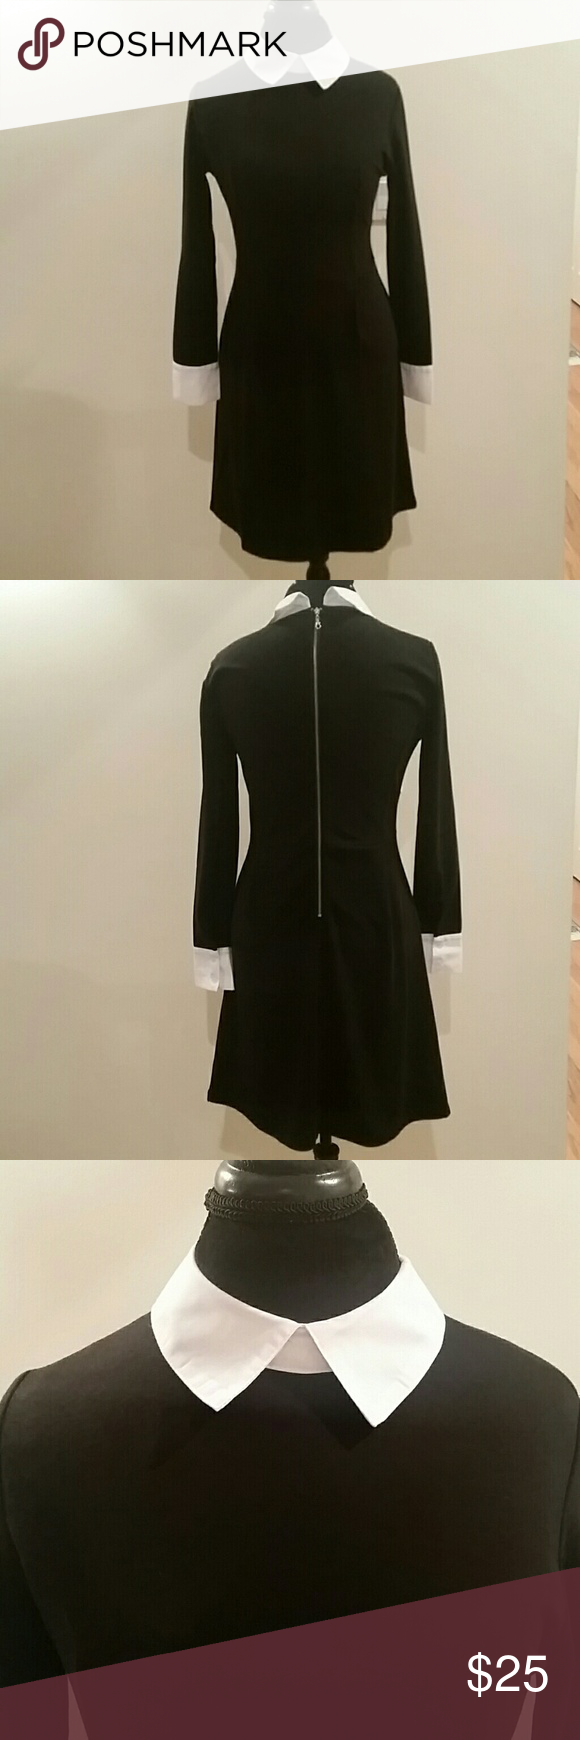 Little black dress black long sleeve dress with white buttoned